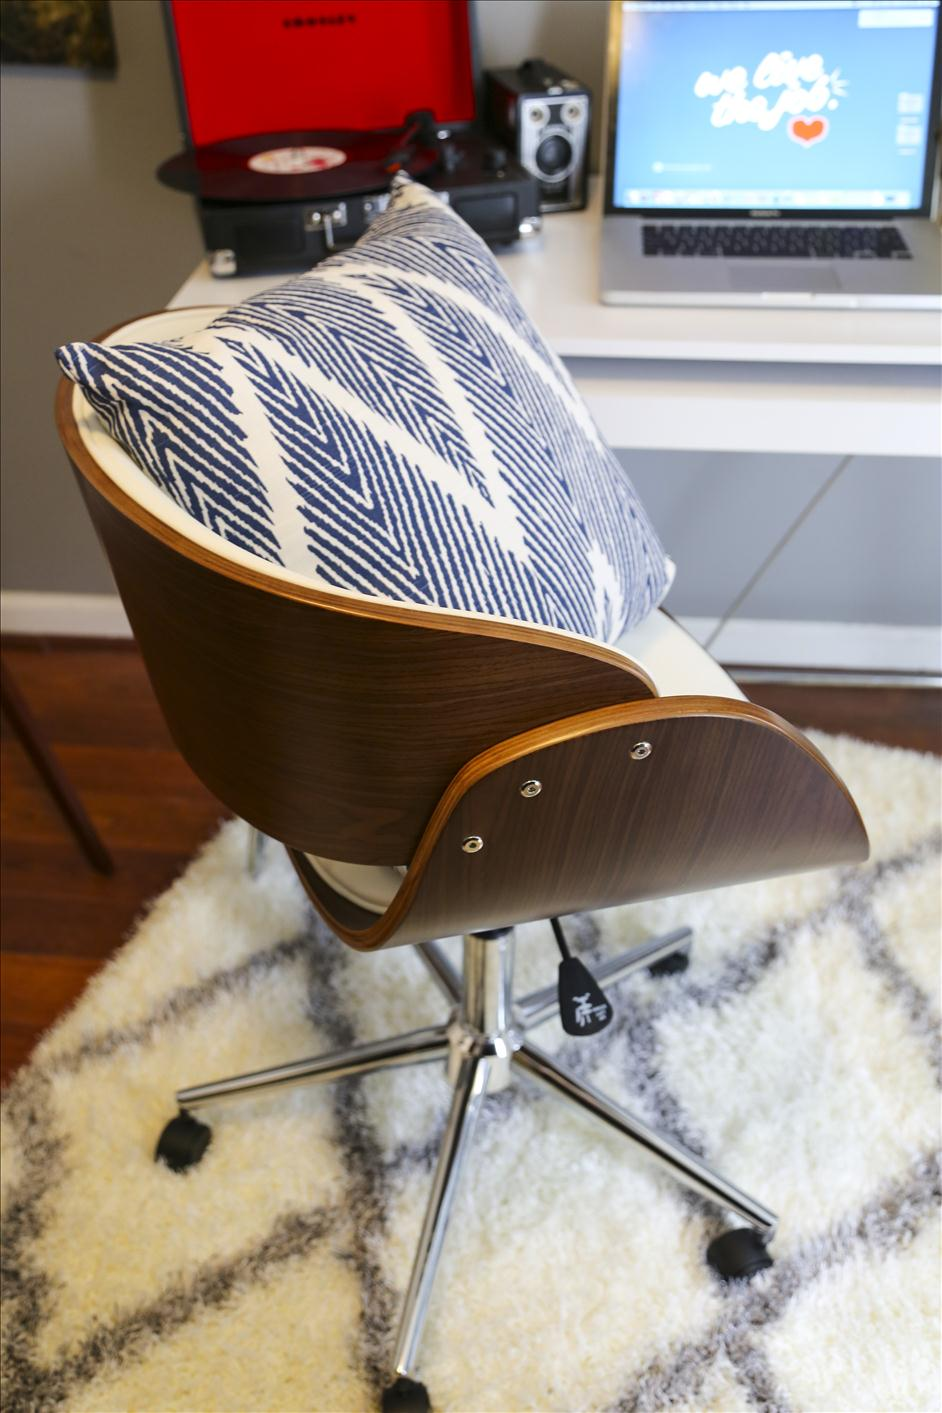 Personalization tips for your home office // Nations Photo Lab & Wayfair